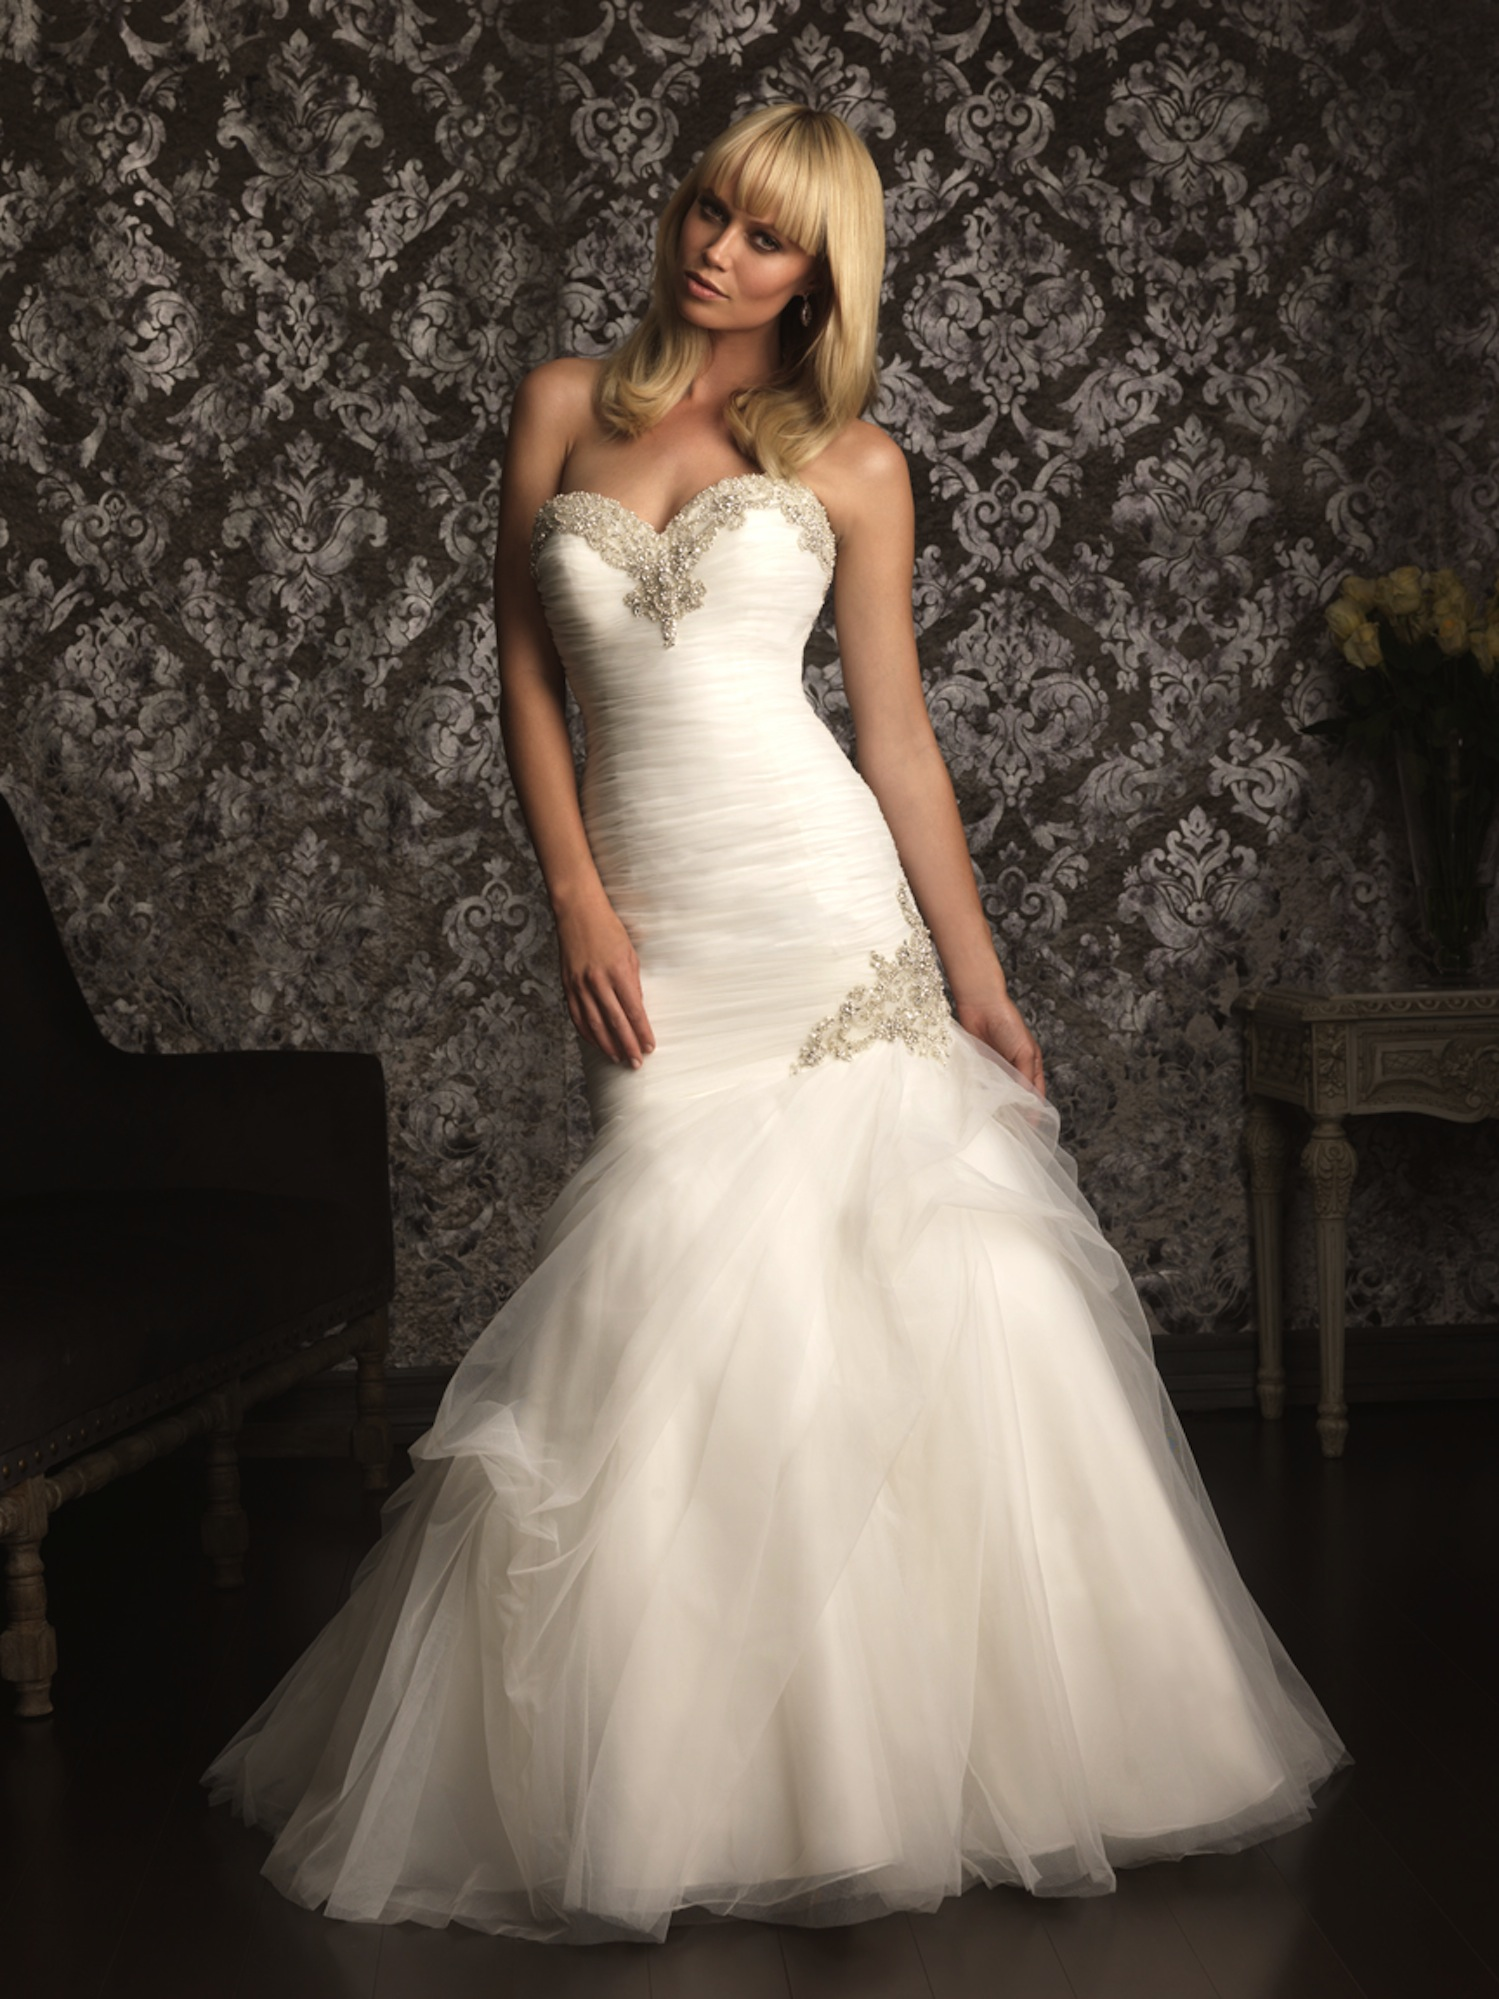 Allure Bridal Wedding Dress. allure bridals style 8903. bridal ...